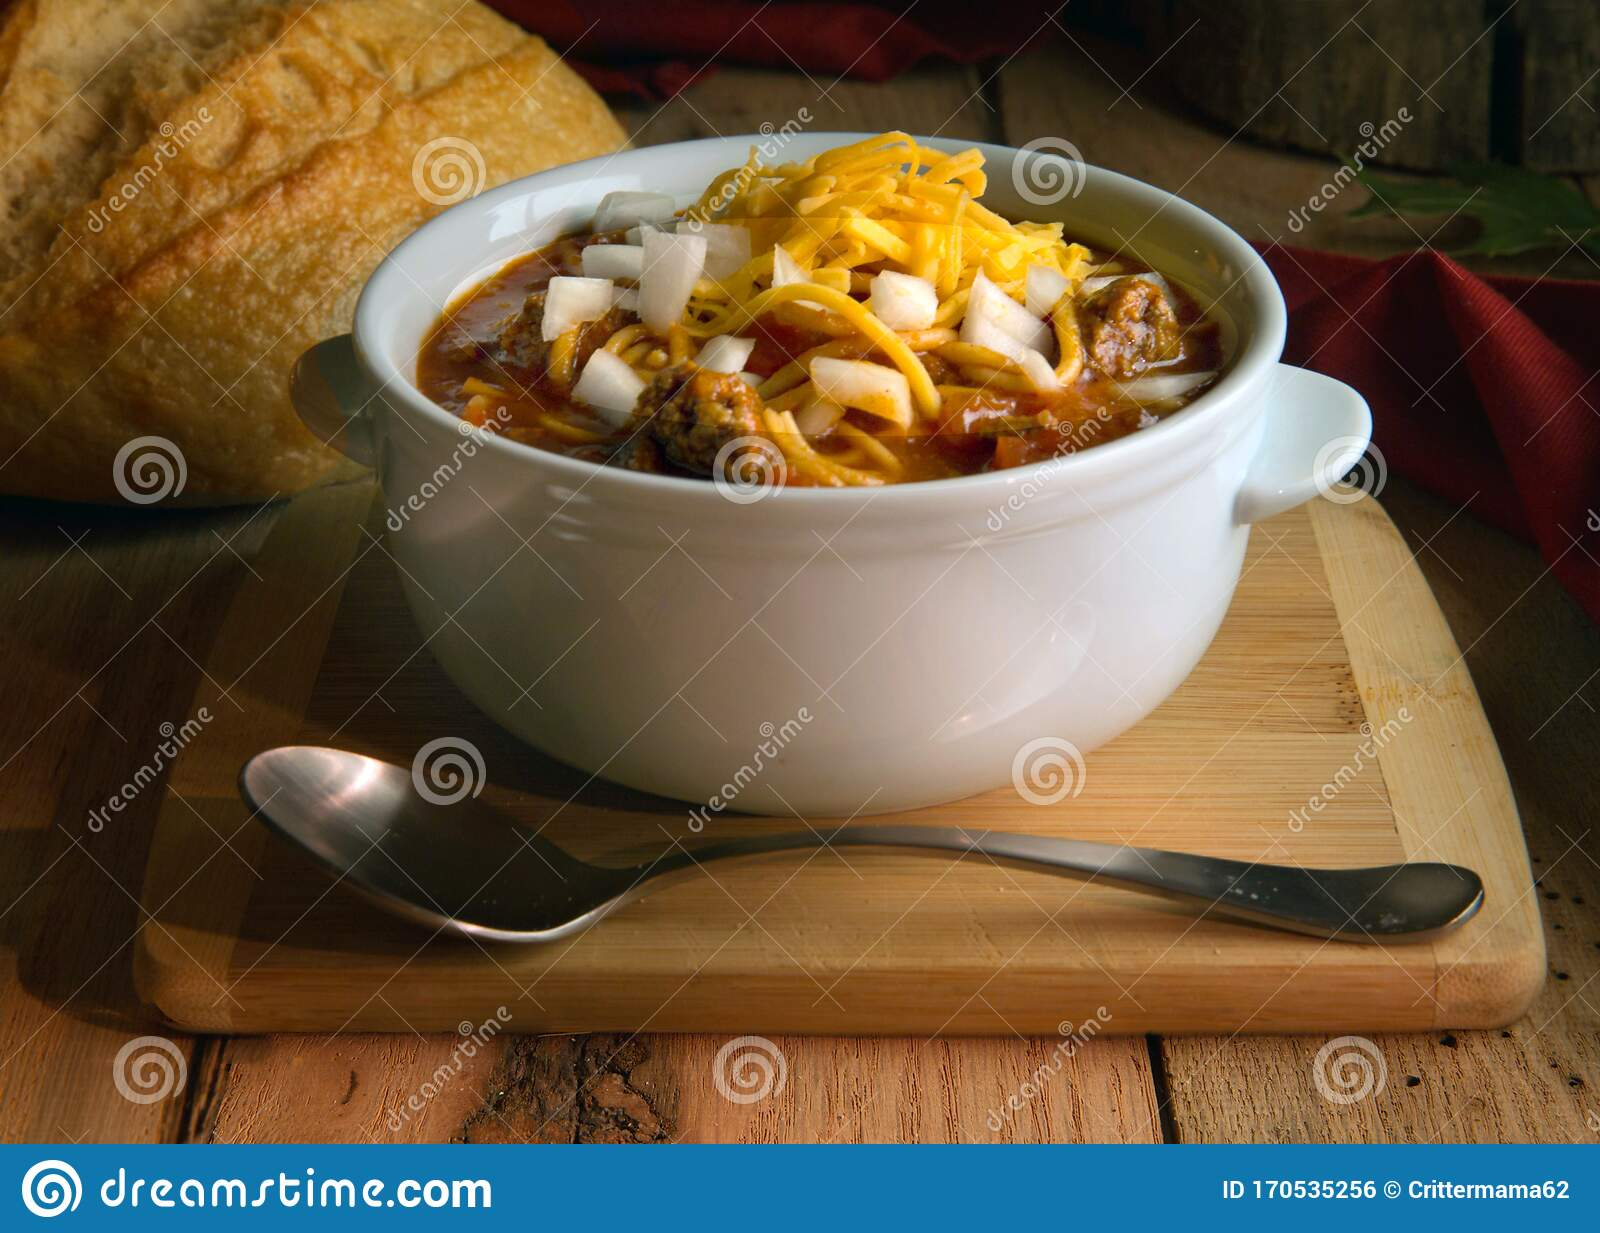 Chili In White Crock With Onions And Cheddar Cheese On Rustic Wood Table Stock Photo Image Of White Food 170535256